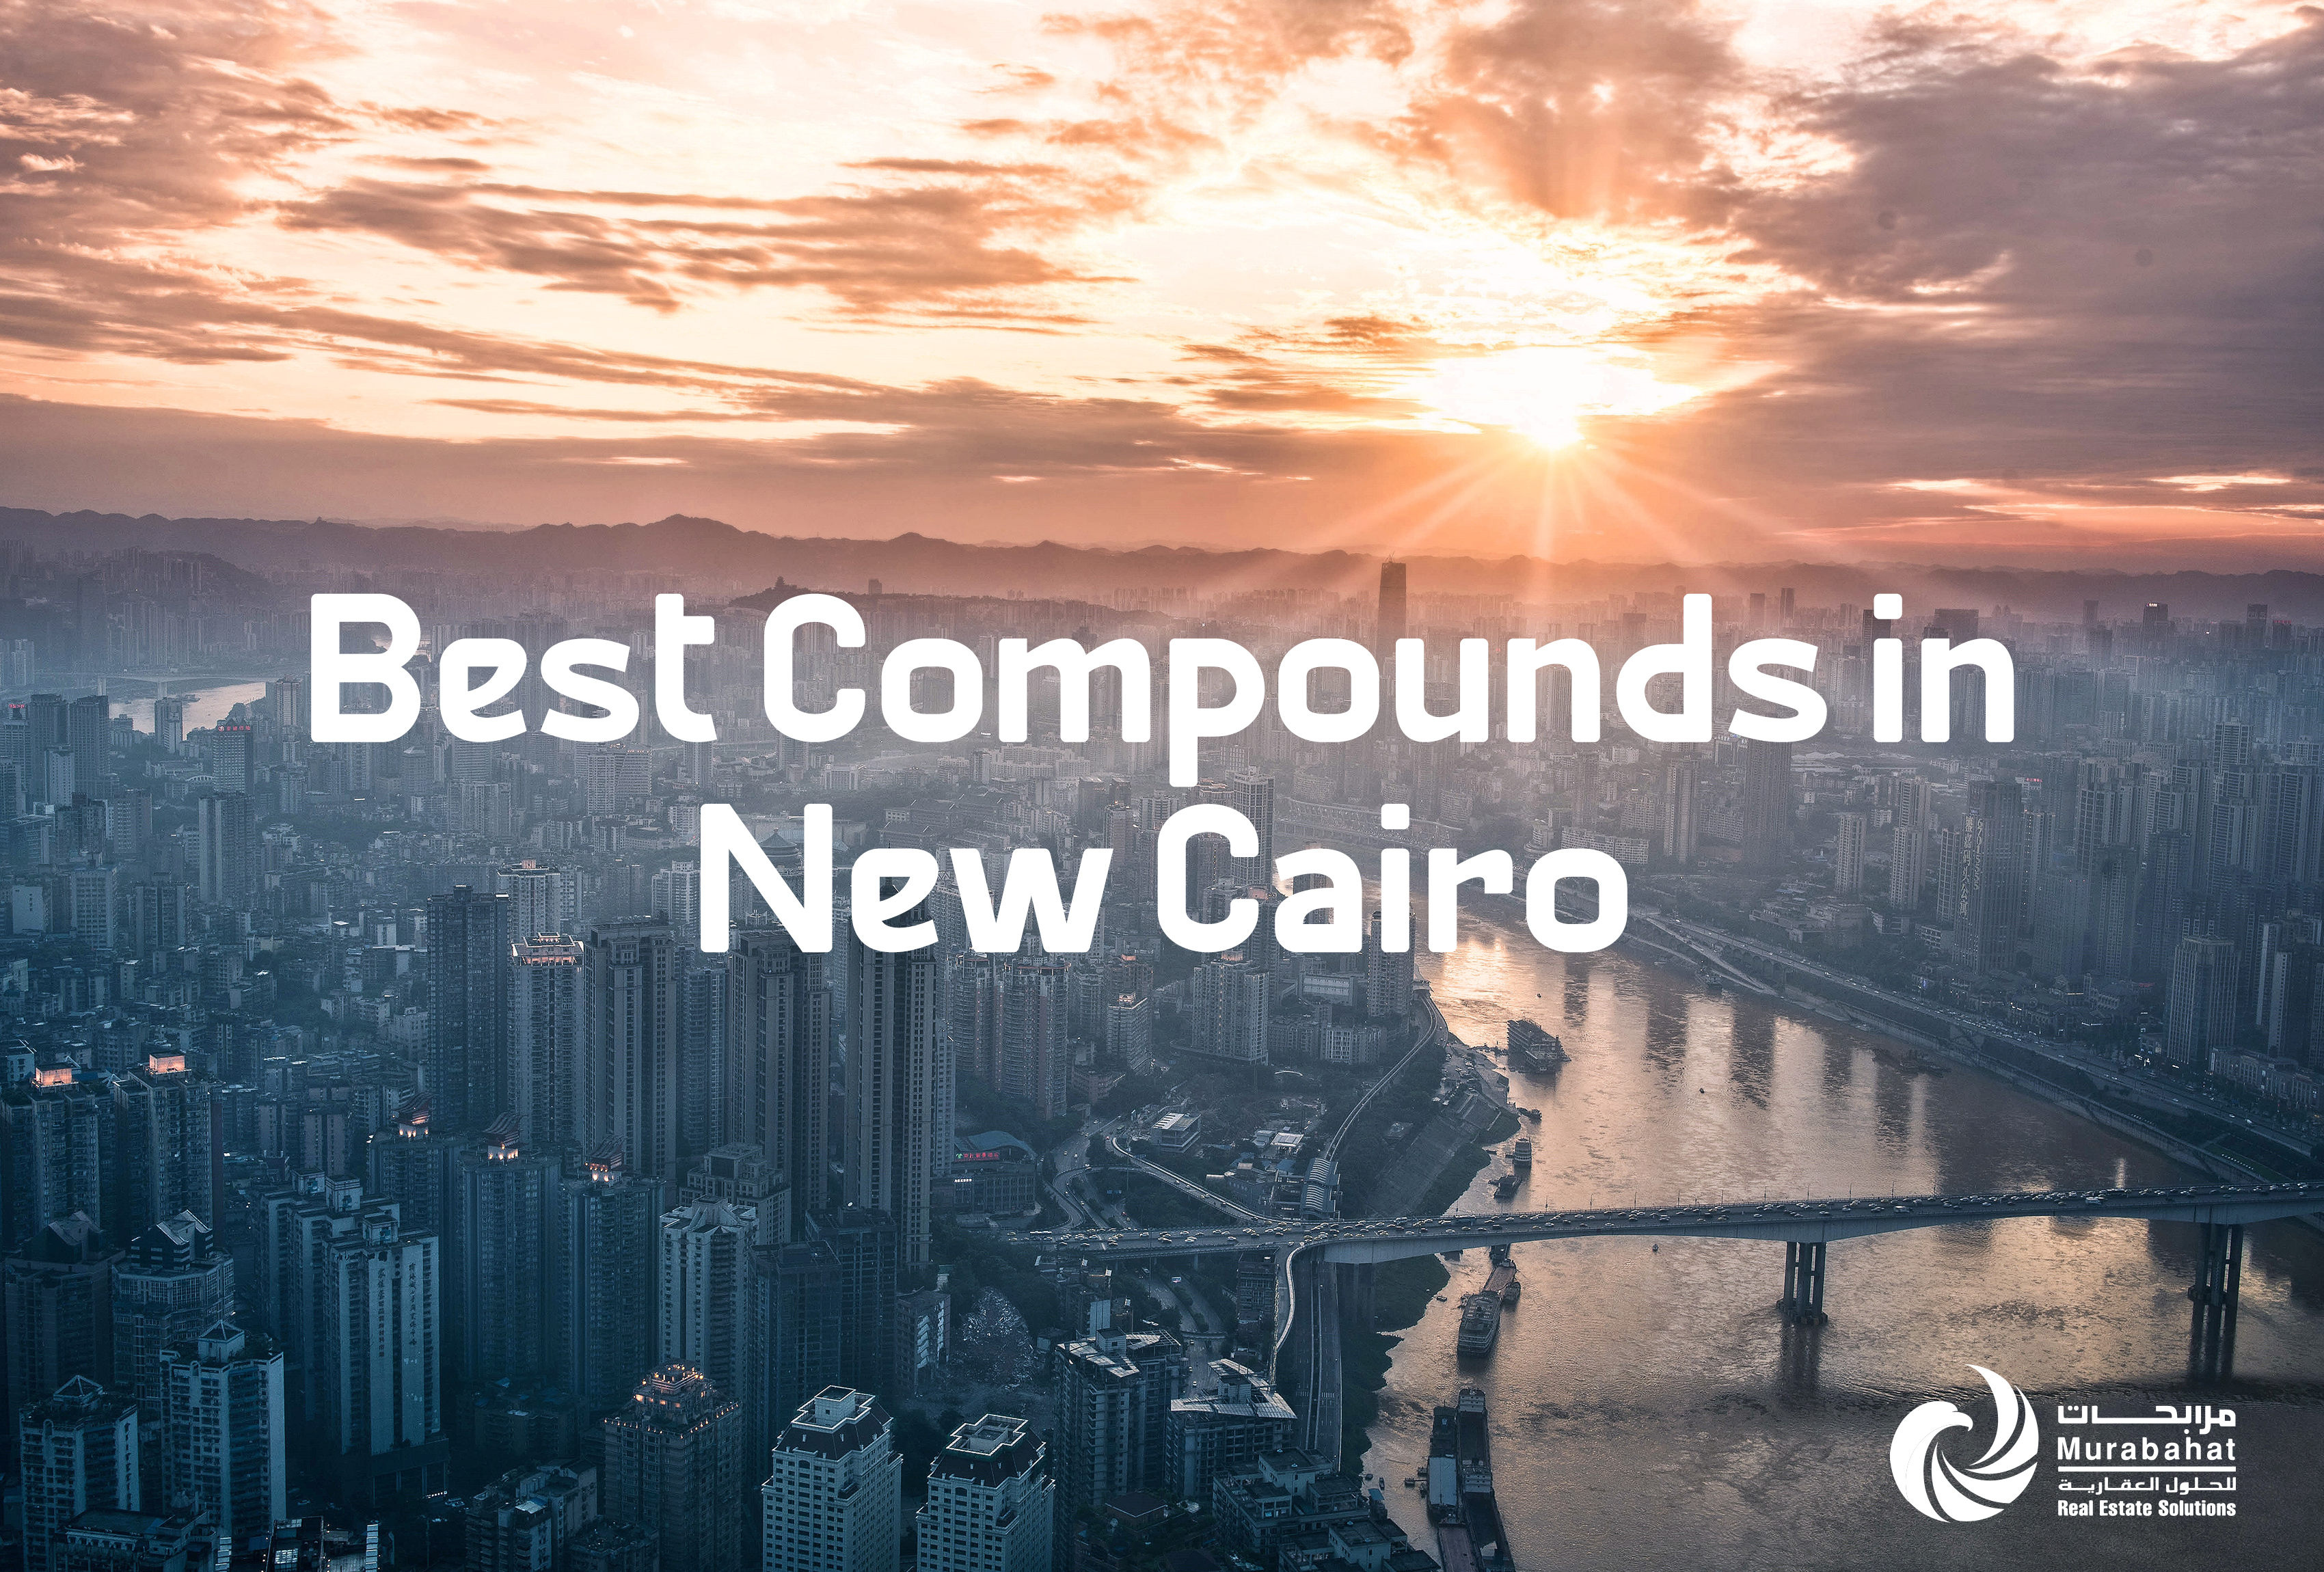 Best 8 Compounds in New Cairo-image